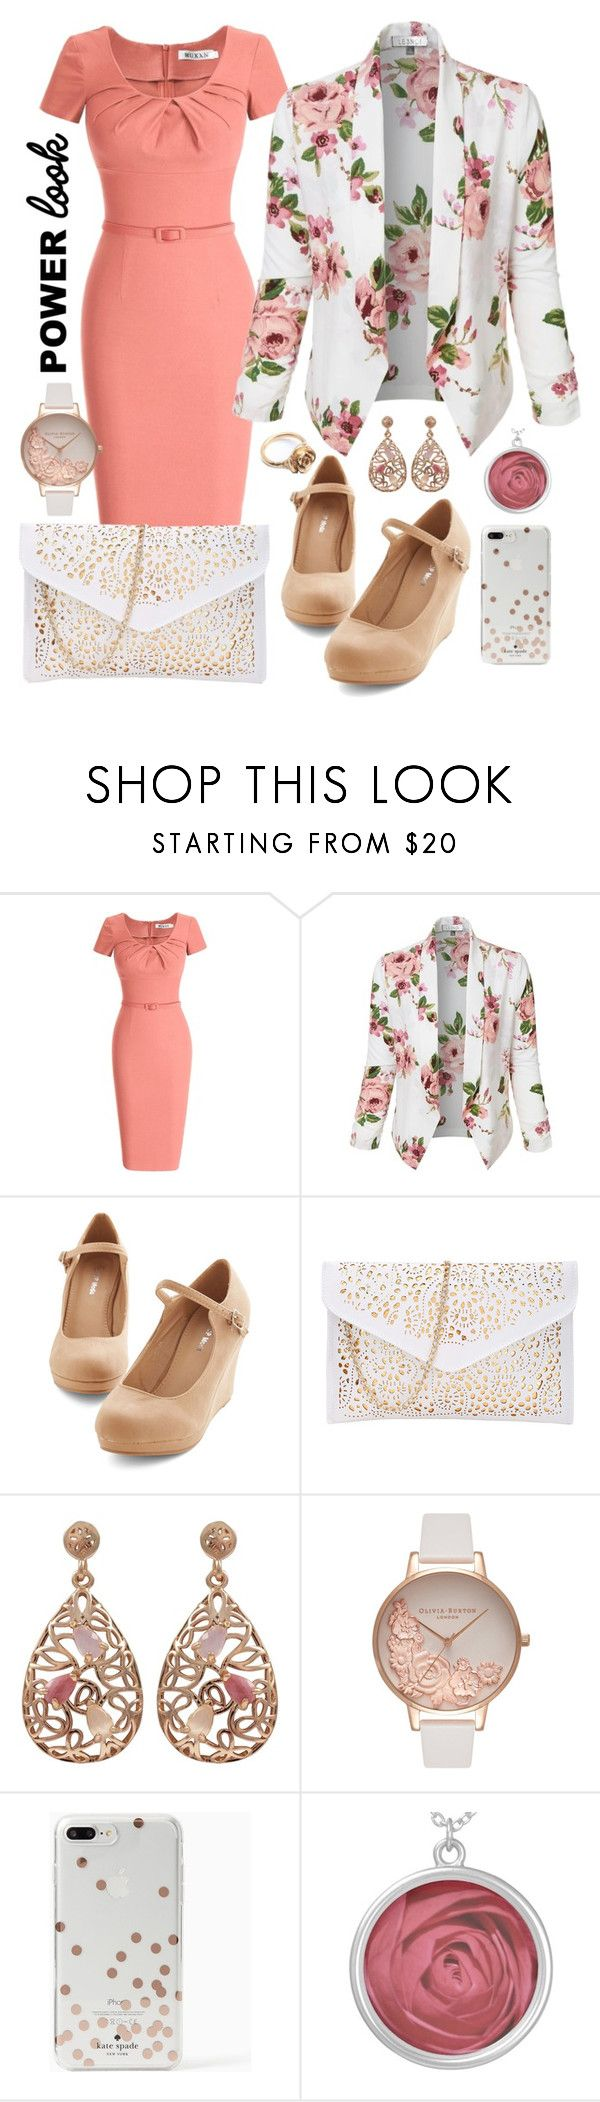 """Rose Power"" by breedeevee on Polyvore featuring LE3NO, Luxiro, Olivia Burton, Kate Spade and LeiVanKash"